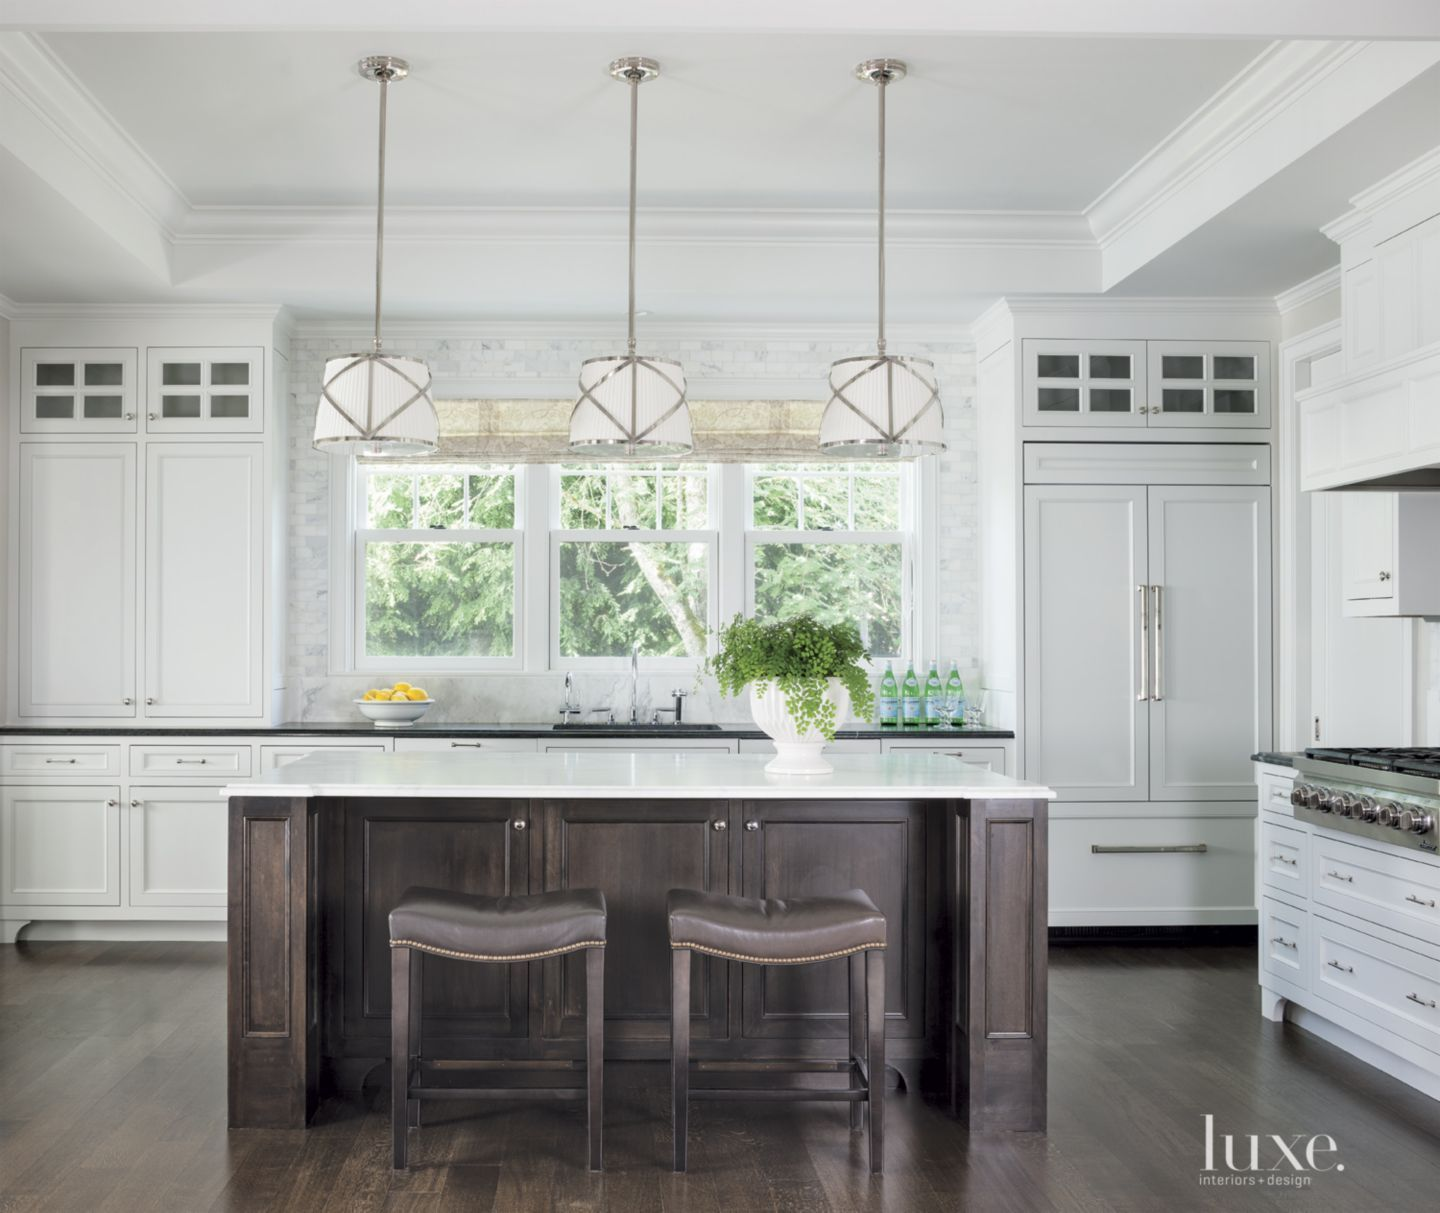 Rice worked with traditional New England architectural elements ...